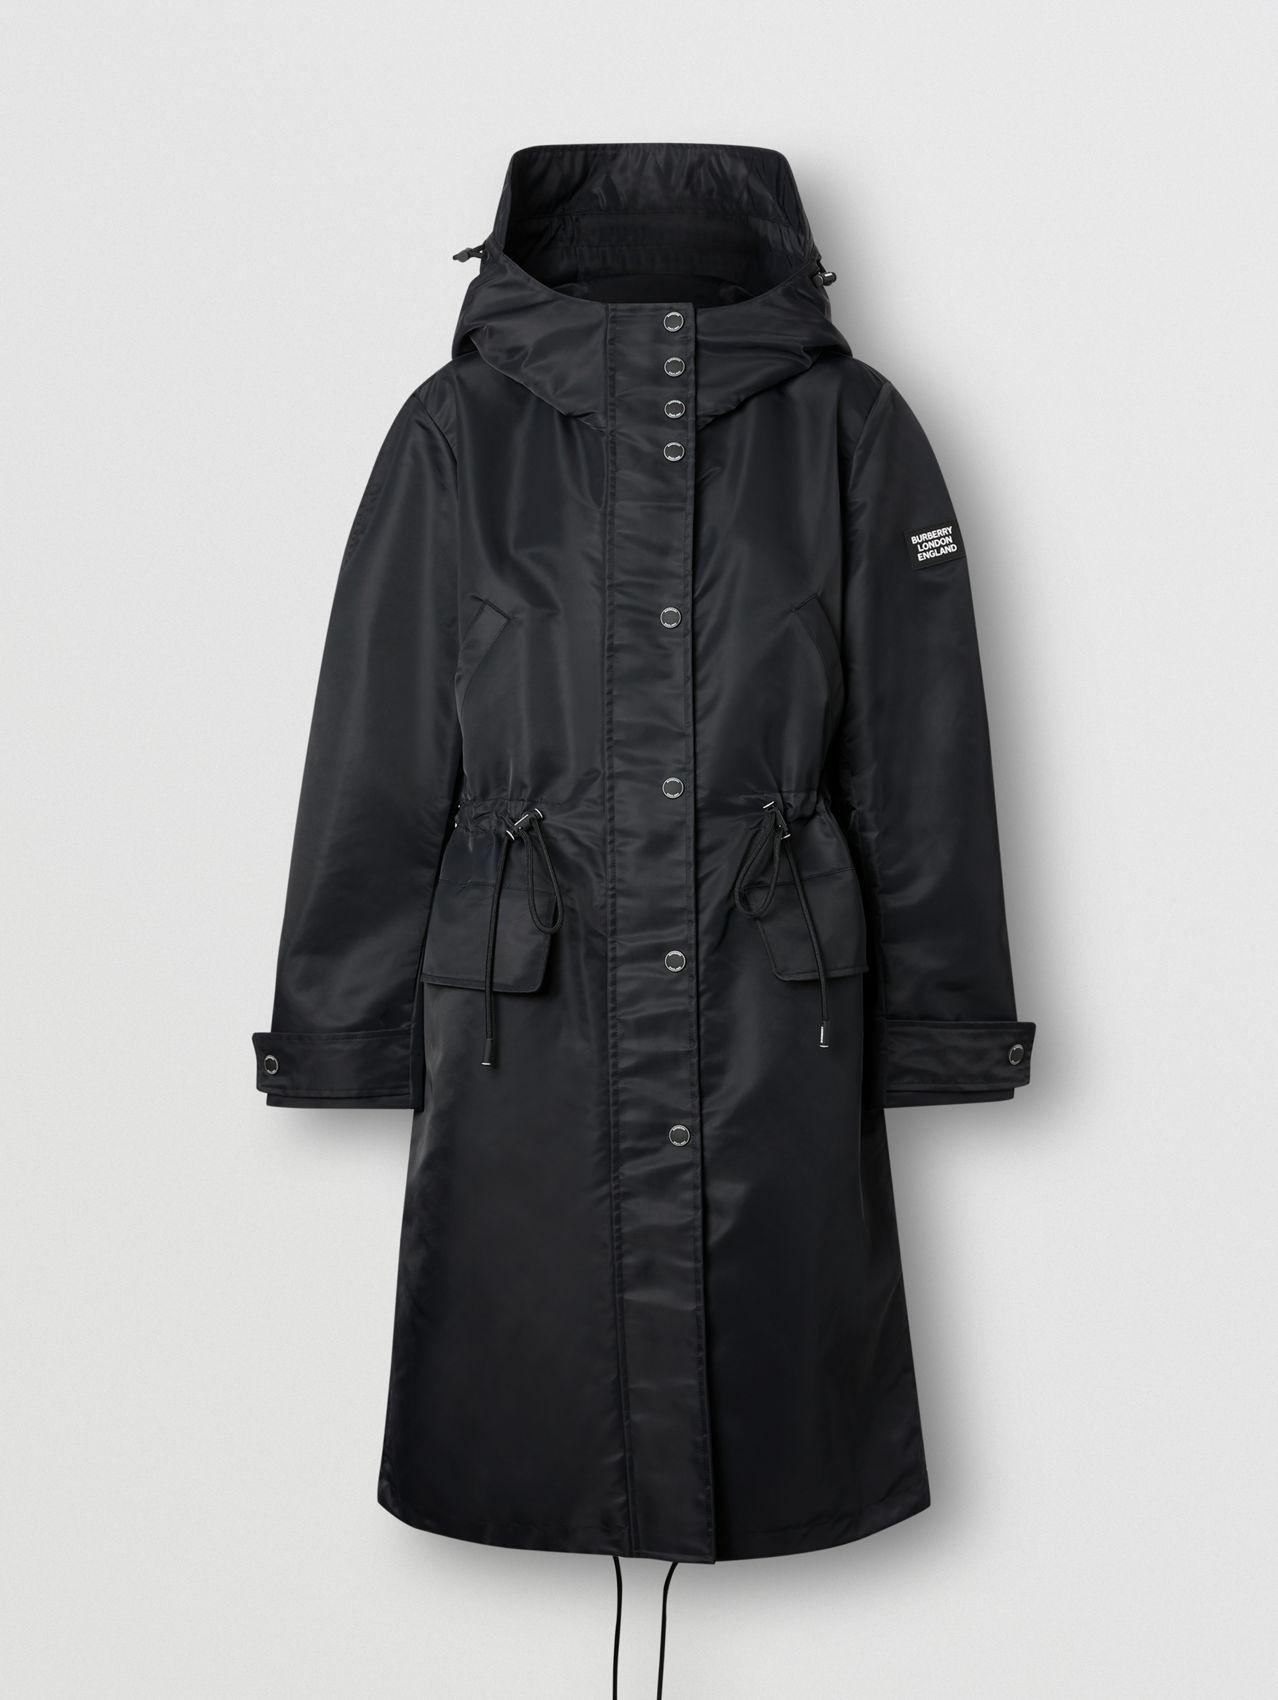 Horseferry Print Recycled Nylon Parka in Black